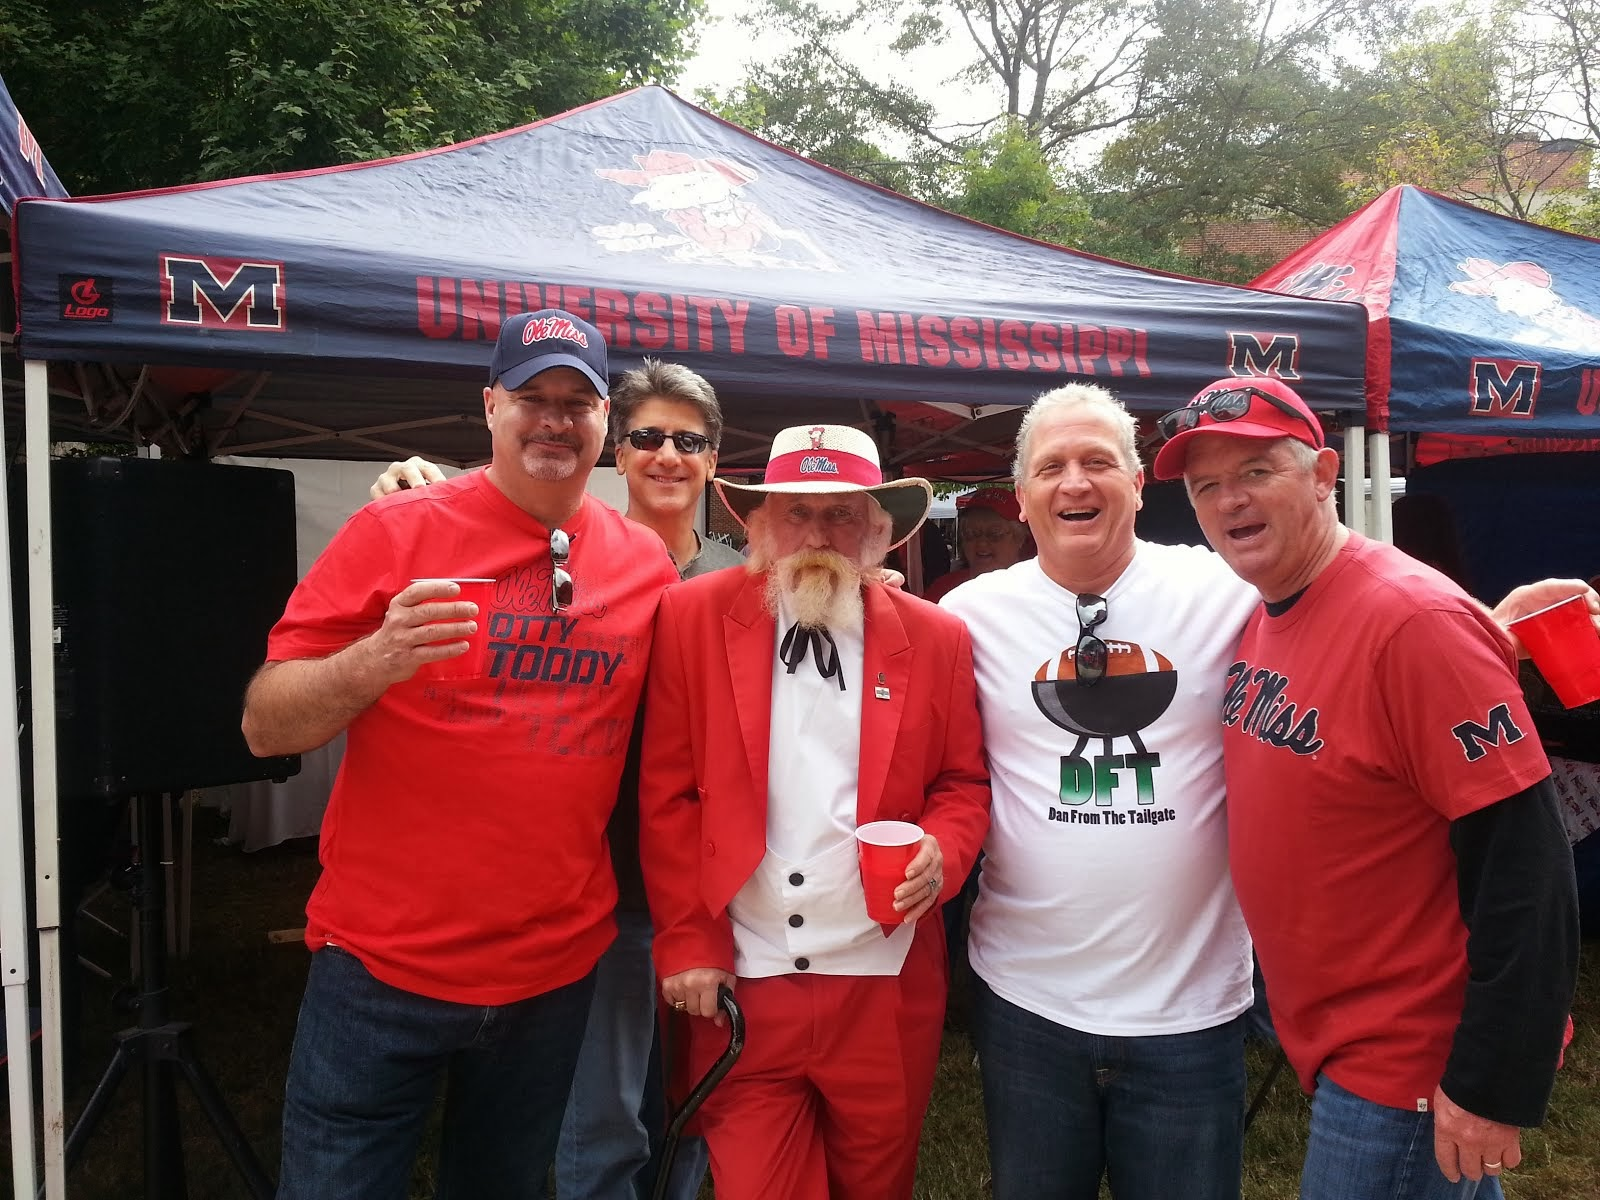 Colonel Reb and the boys